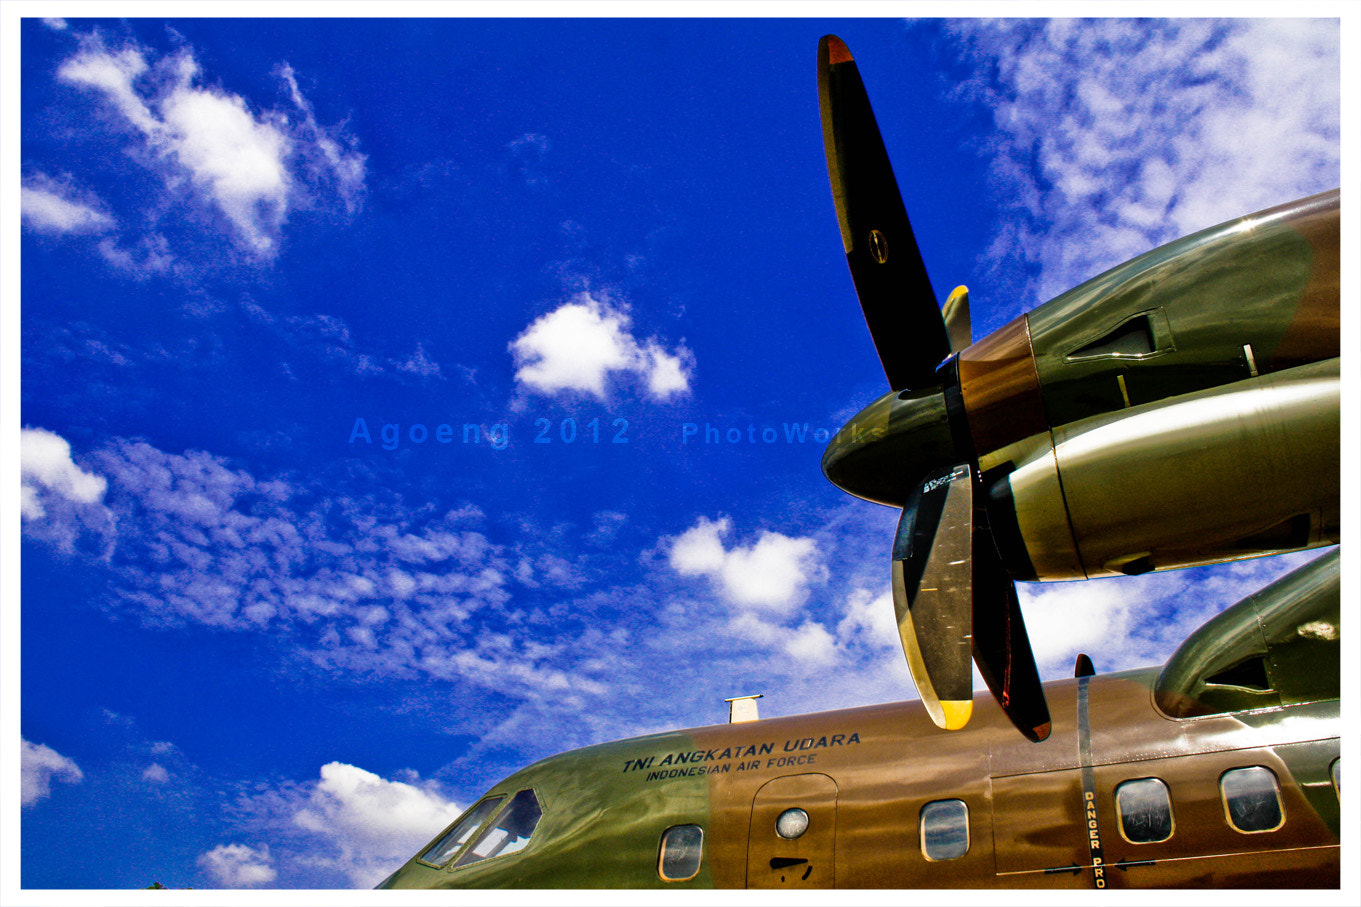 Photograph Indonesian Air Force by Agung Laksana on 500px